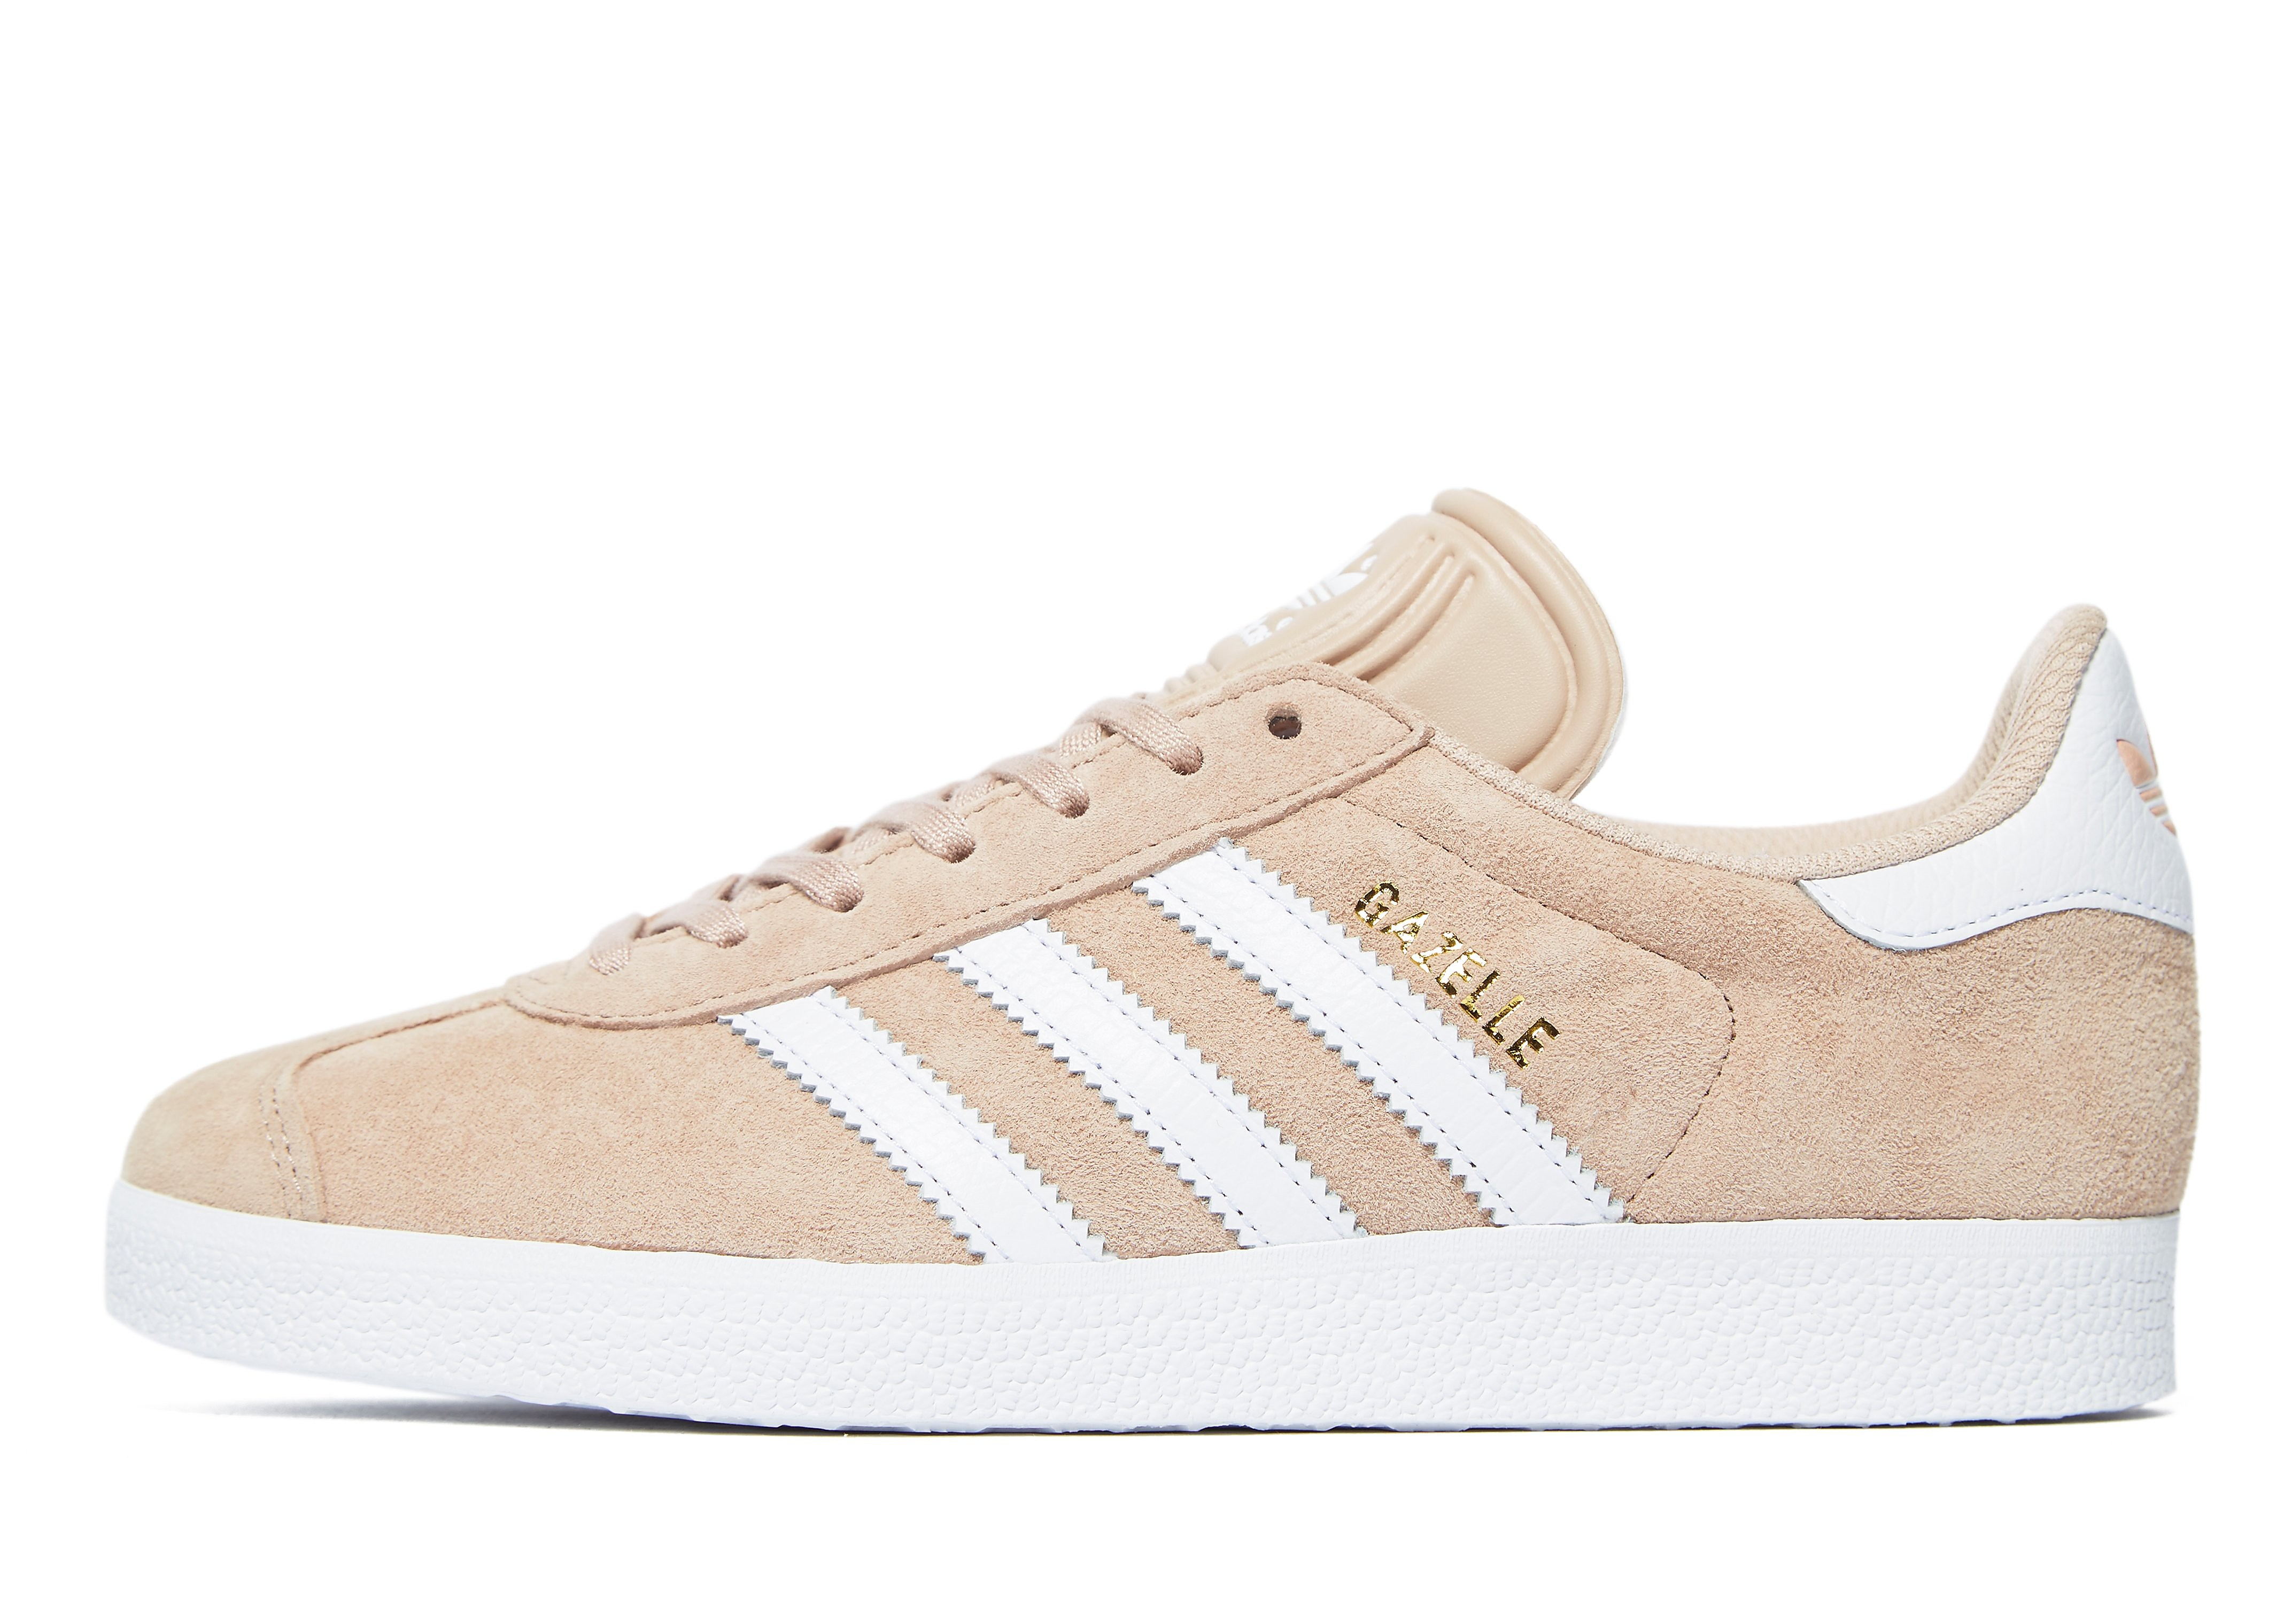 adidas Originals Gazelle Women's